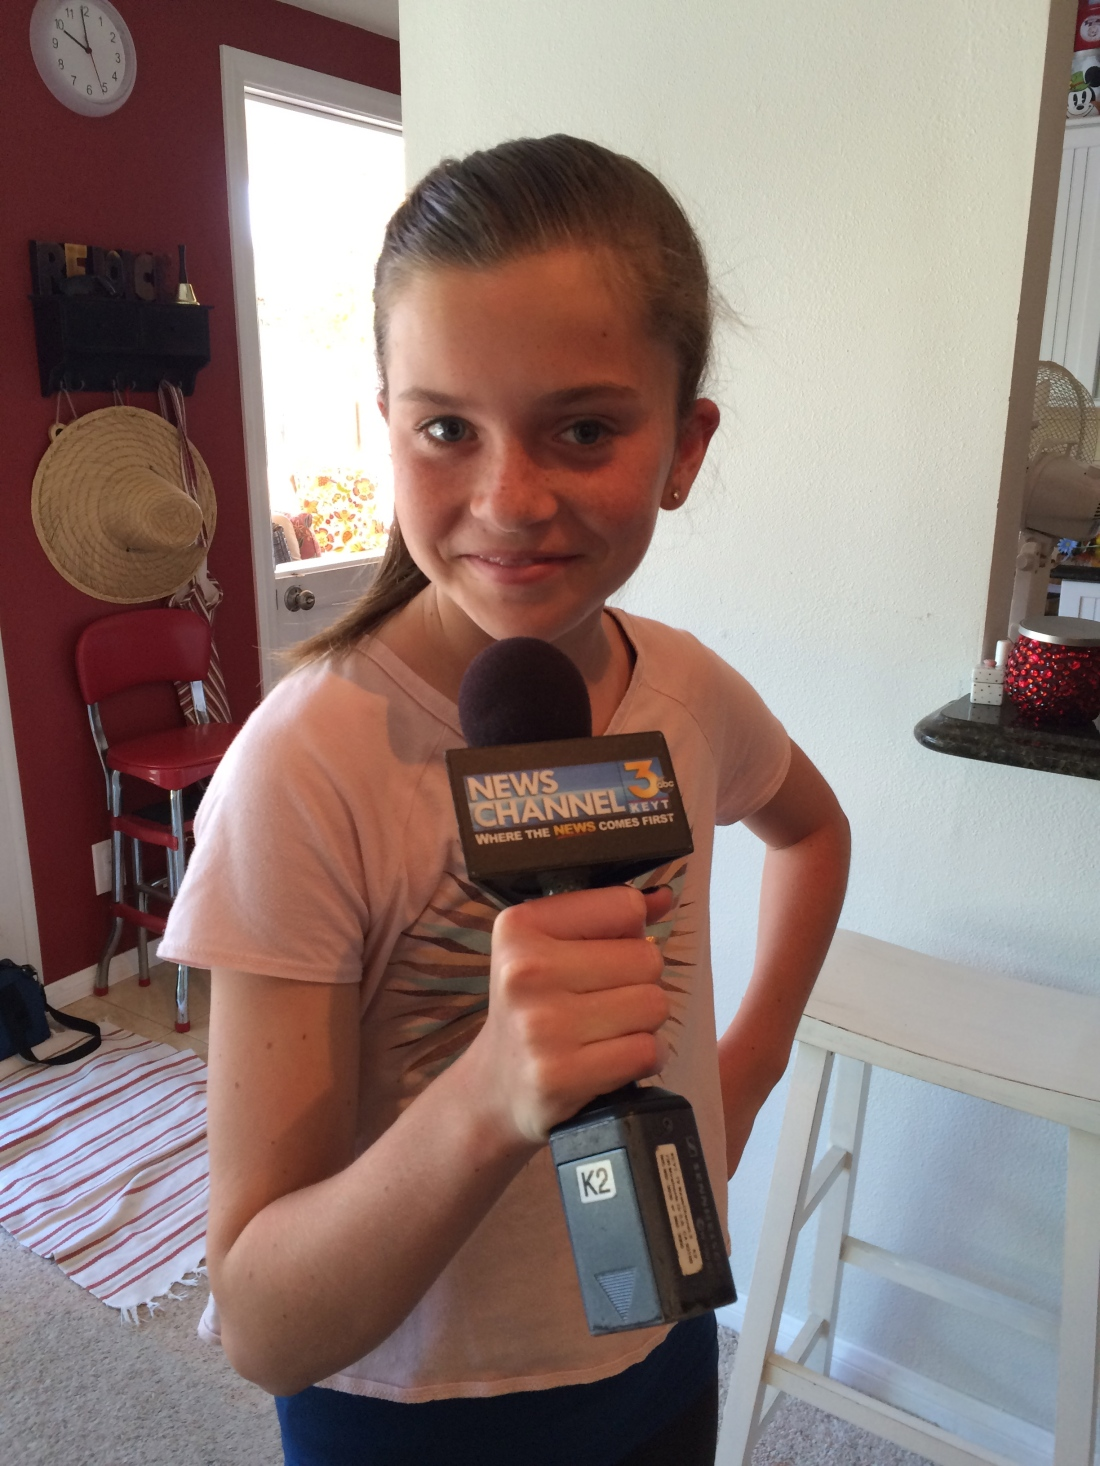 Livy tried her hand at hard-hitting reporting!